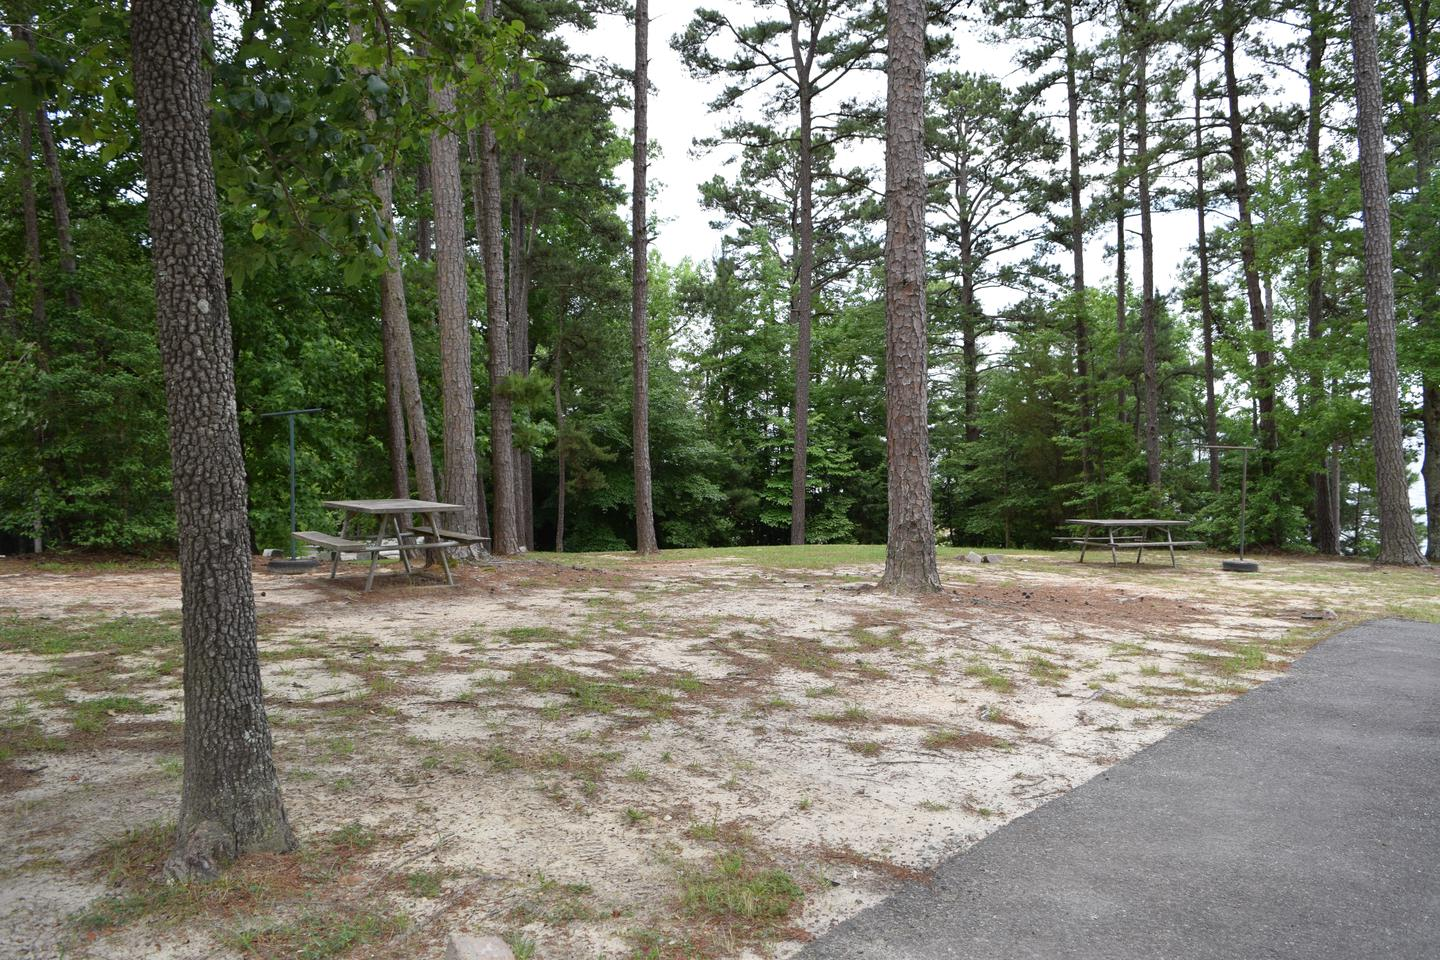 Mays Chapel Group Camping Welcome to Mays Chapel Group Camping Area! This is a picture of some of the picnic tables available in the area. There is no designated areas for tents to set up. Mays Chapel is very open with few trees.